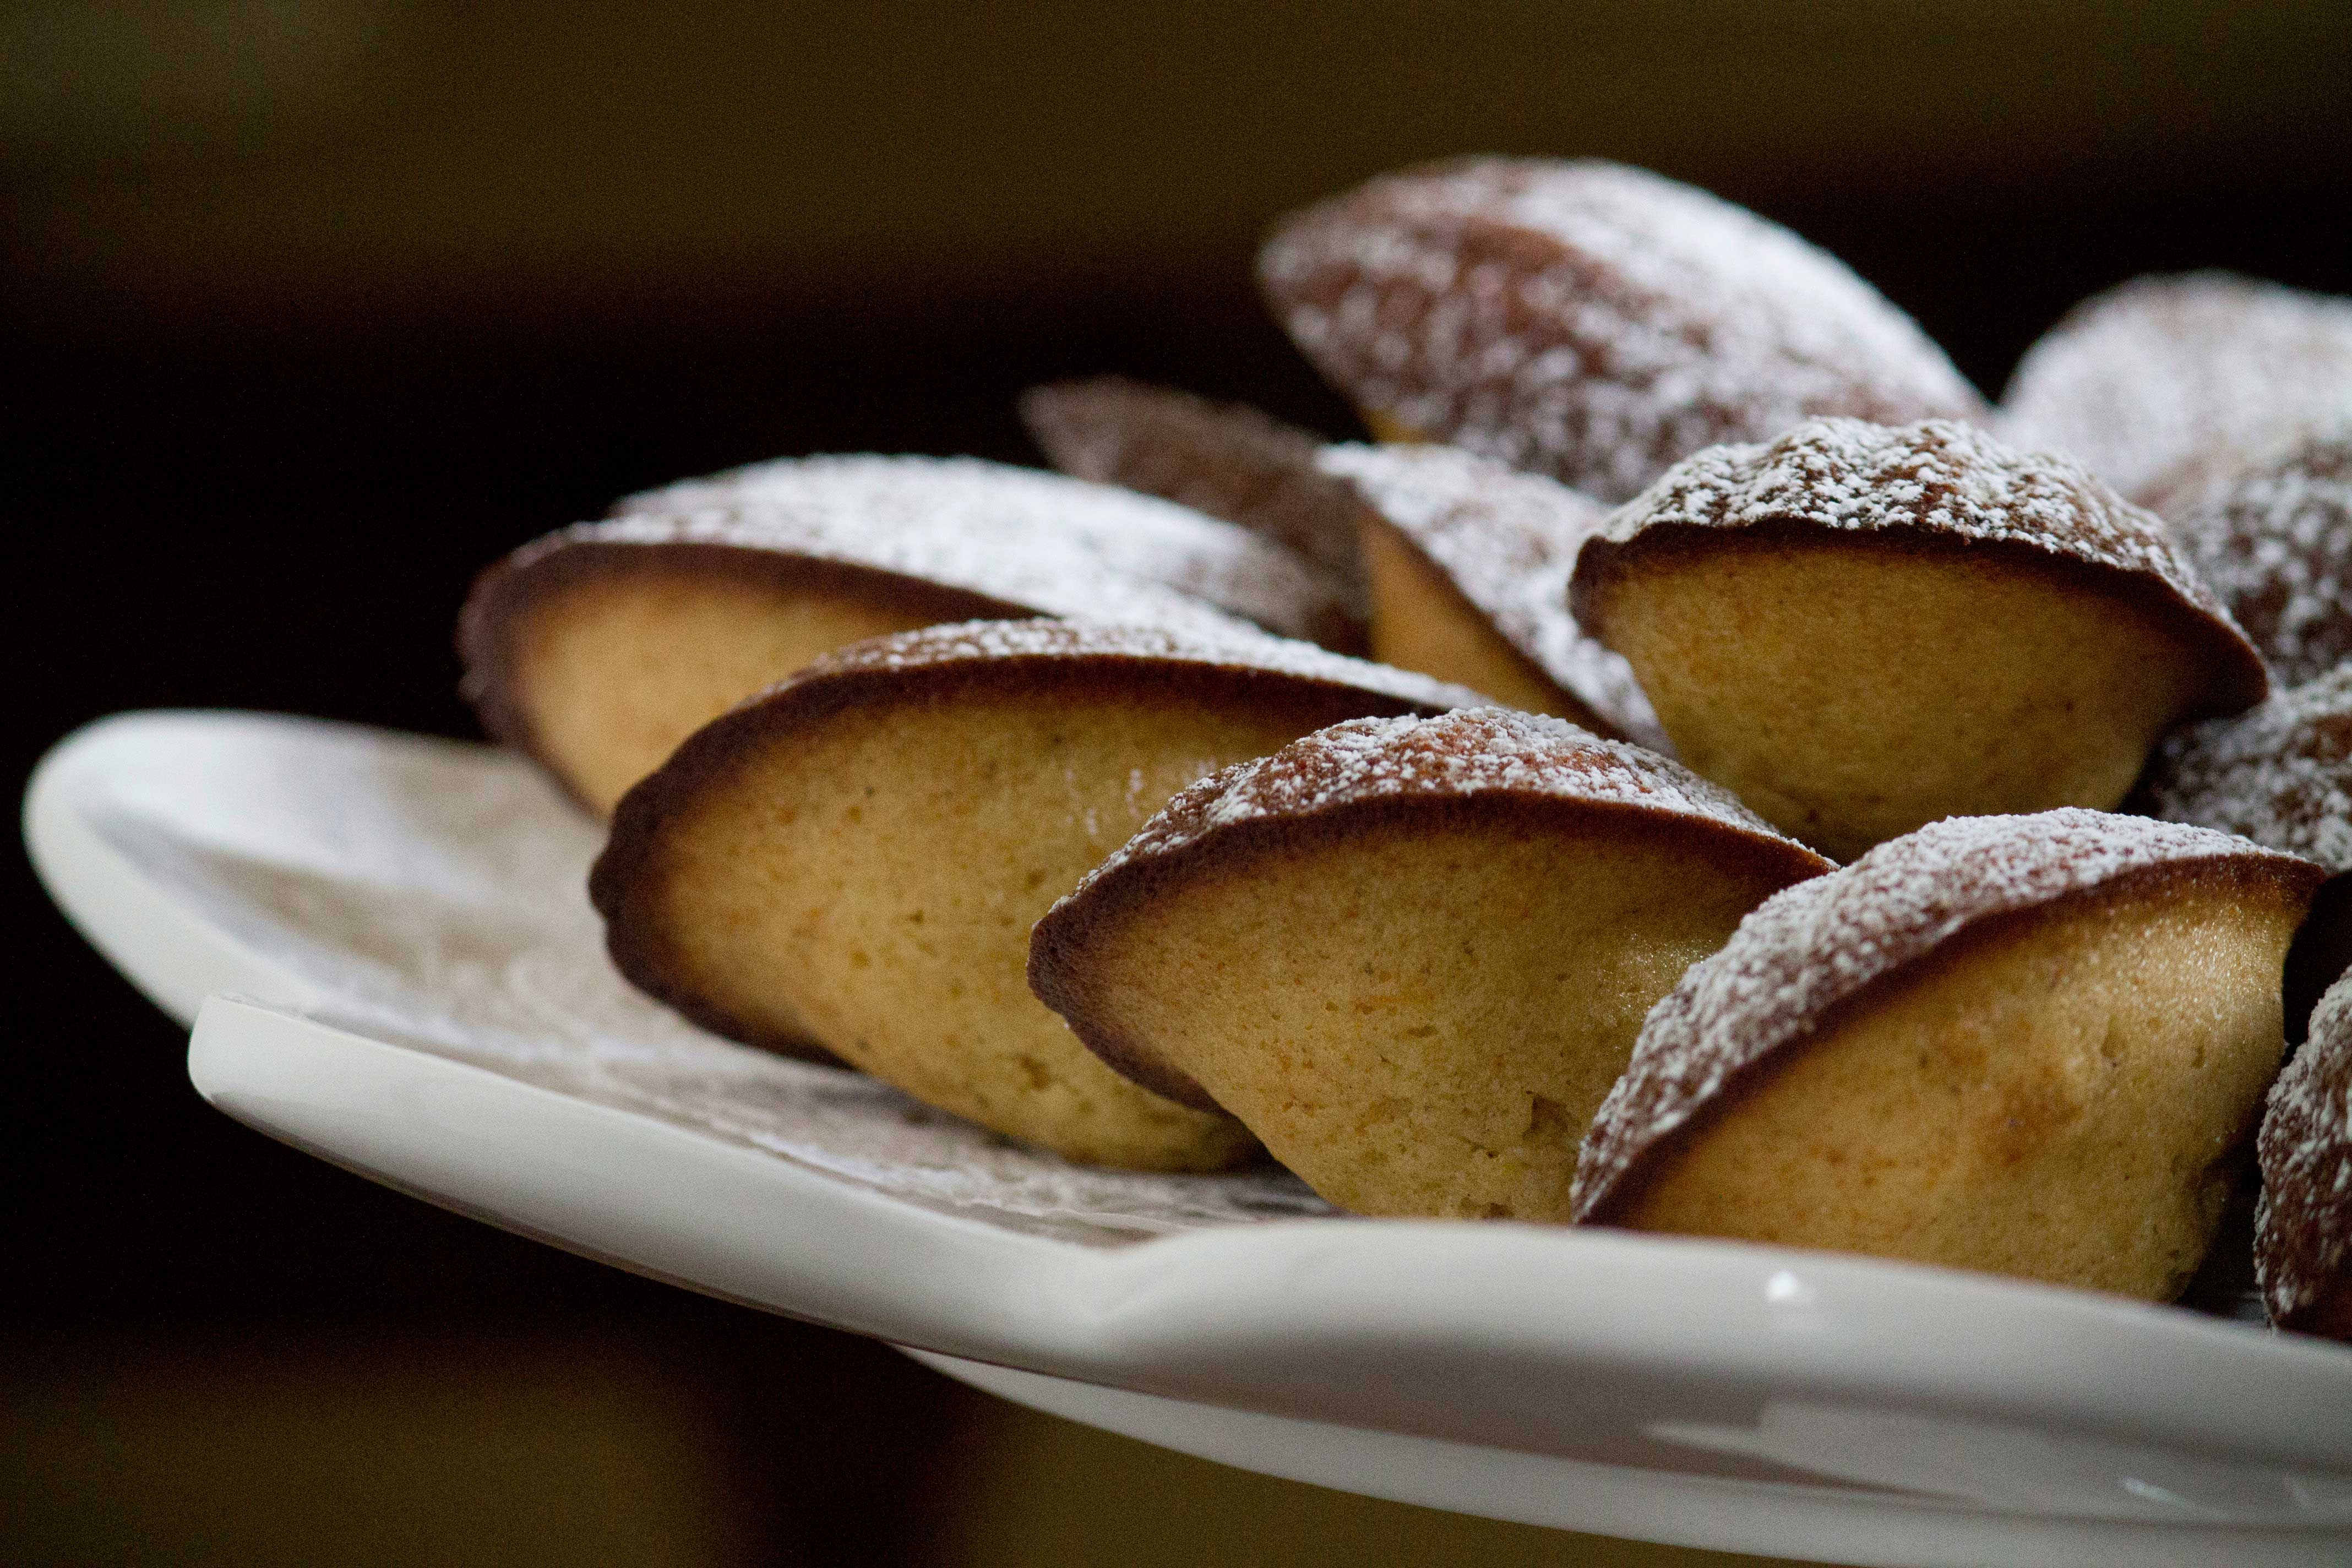 Orange Spiced Madeleines (baked when I'm tired of Winter)